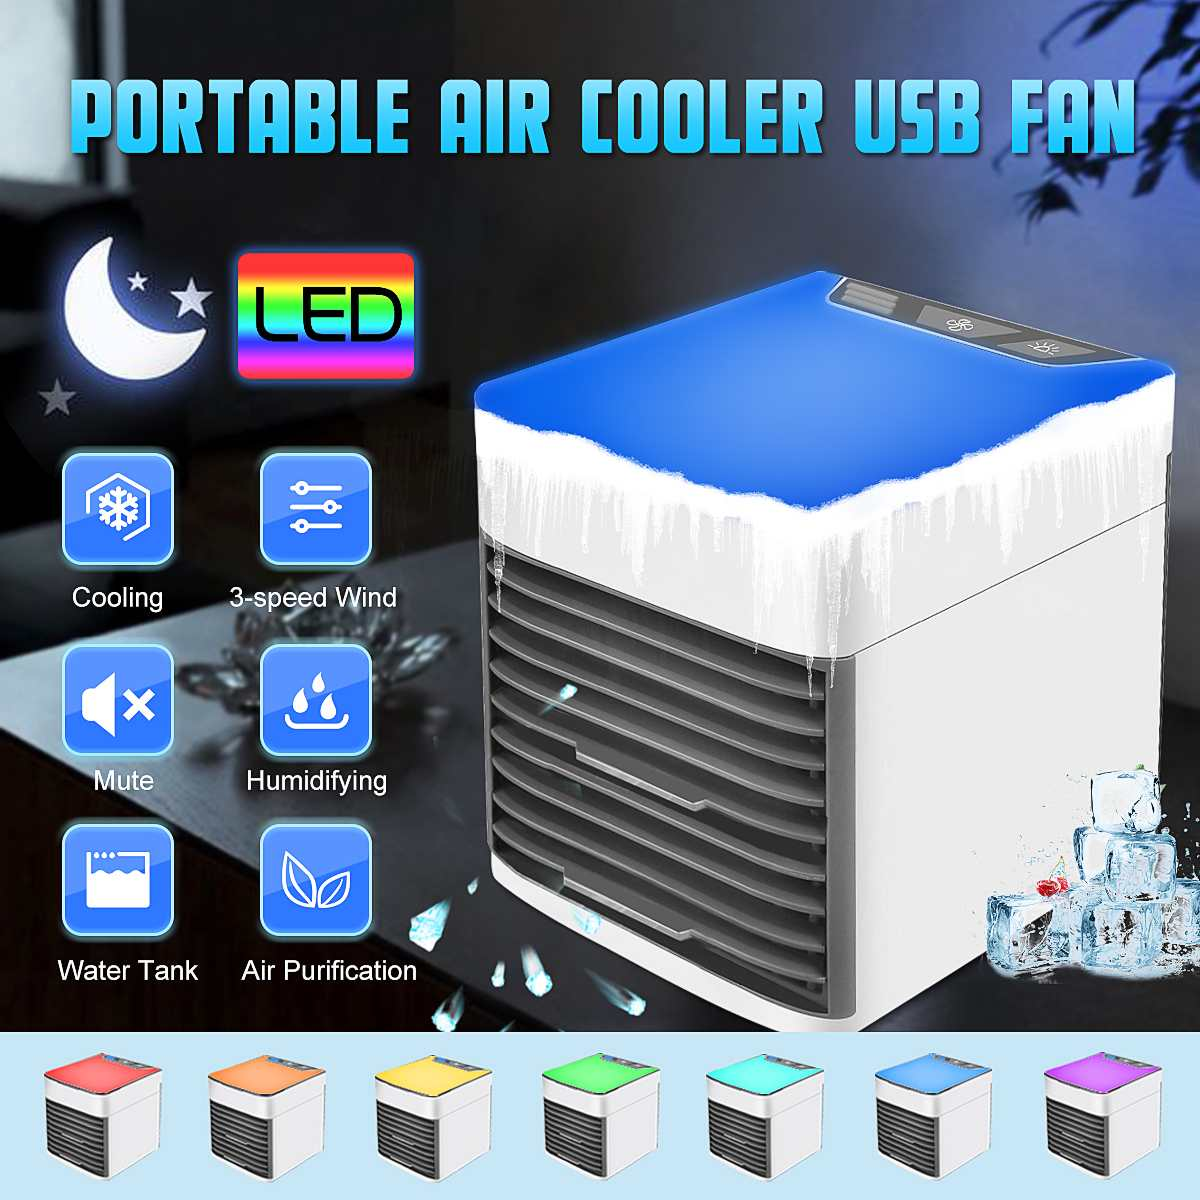 Mini 3Speed Portable Air Conditioner 7 Colors USB LED Night Light Air Humidifier Purifier Filter Desktops Air Cooling Cooler FanMini 3Speed Portable Air Conditioner 7 Colors USB LED Night Light Air Humidifier Purifier Filter Desktops Air Cooling Cooler Fan